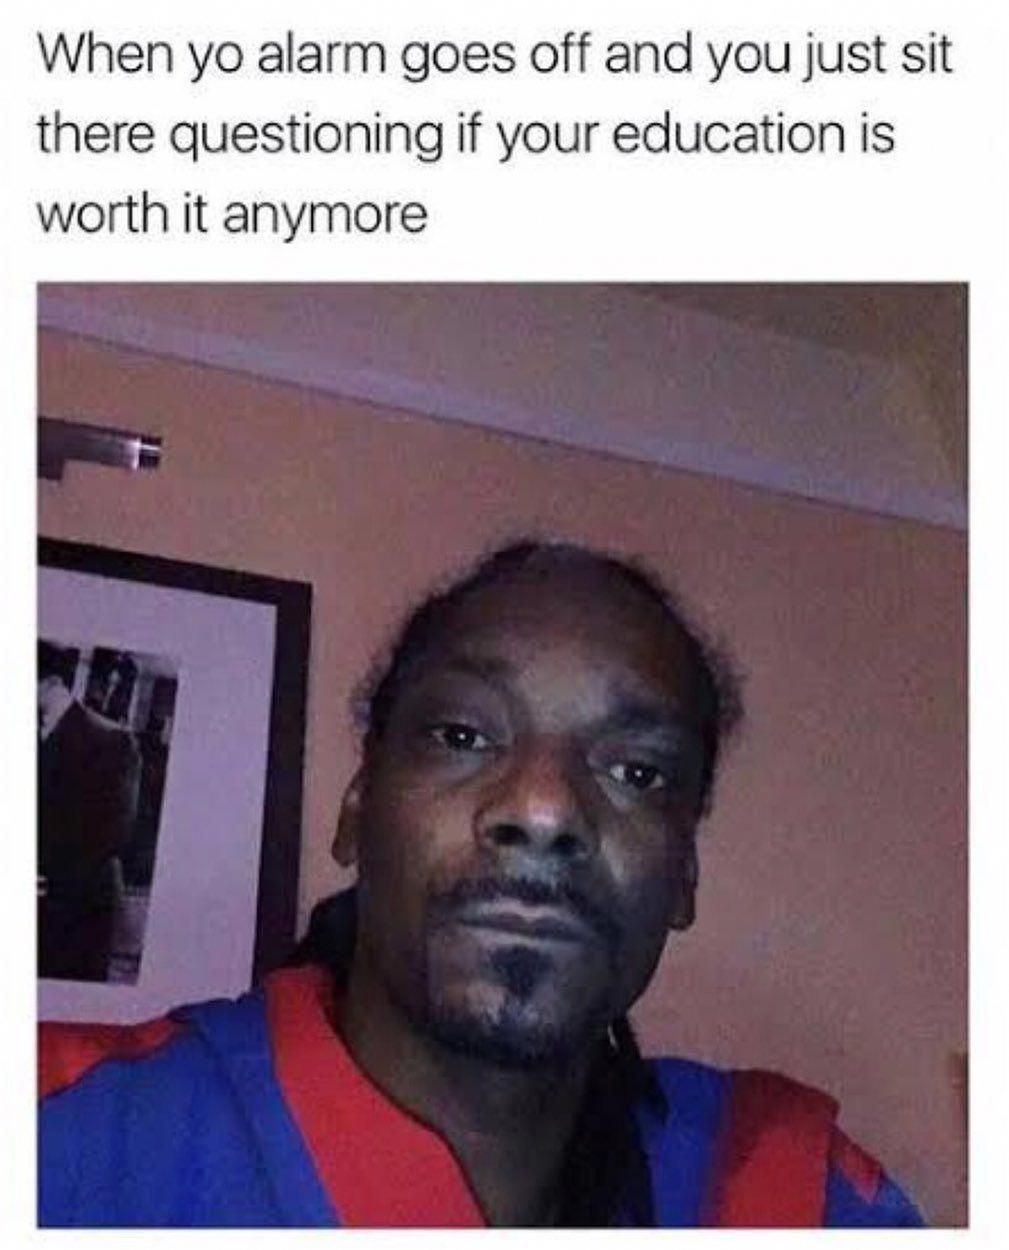 Online School Supplies Online School College Online School Aesthetic Online School Vs Public Onlineschoolk1 Stupid Funny Memes Stupid Memes Really Funny Memes